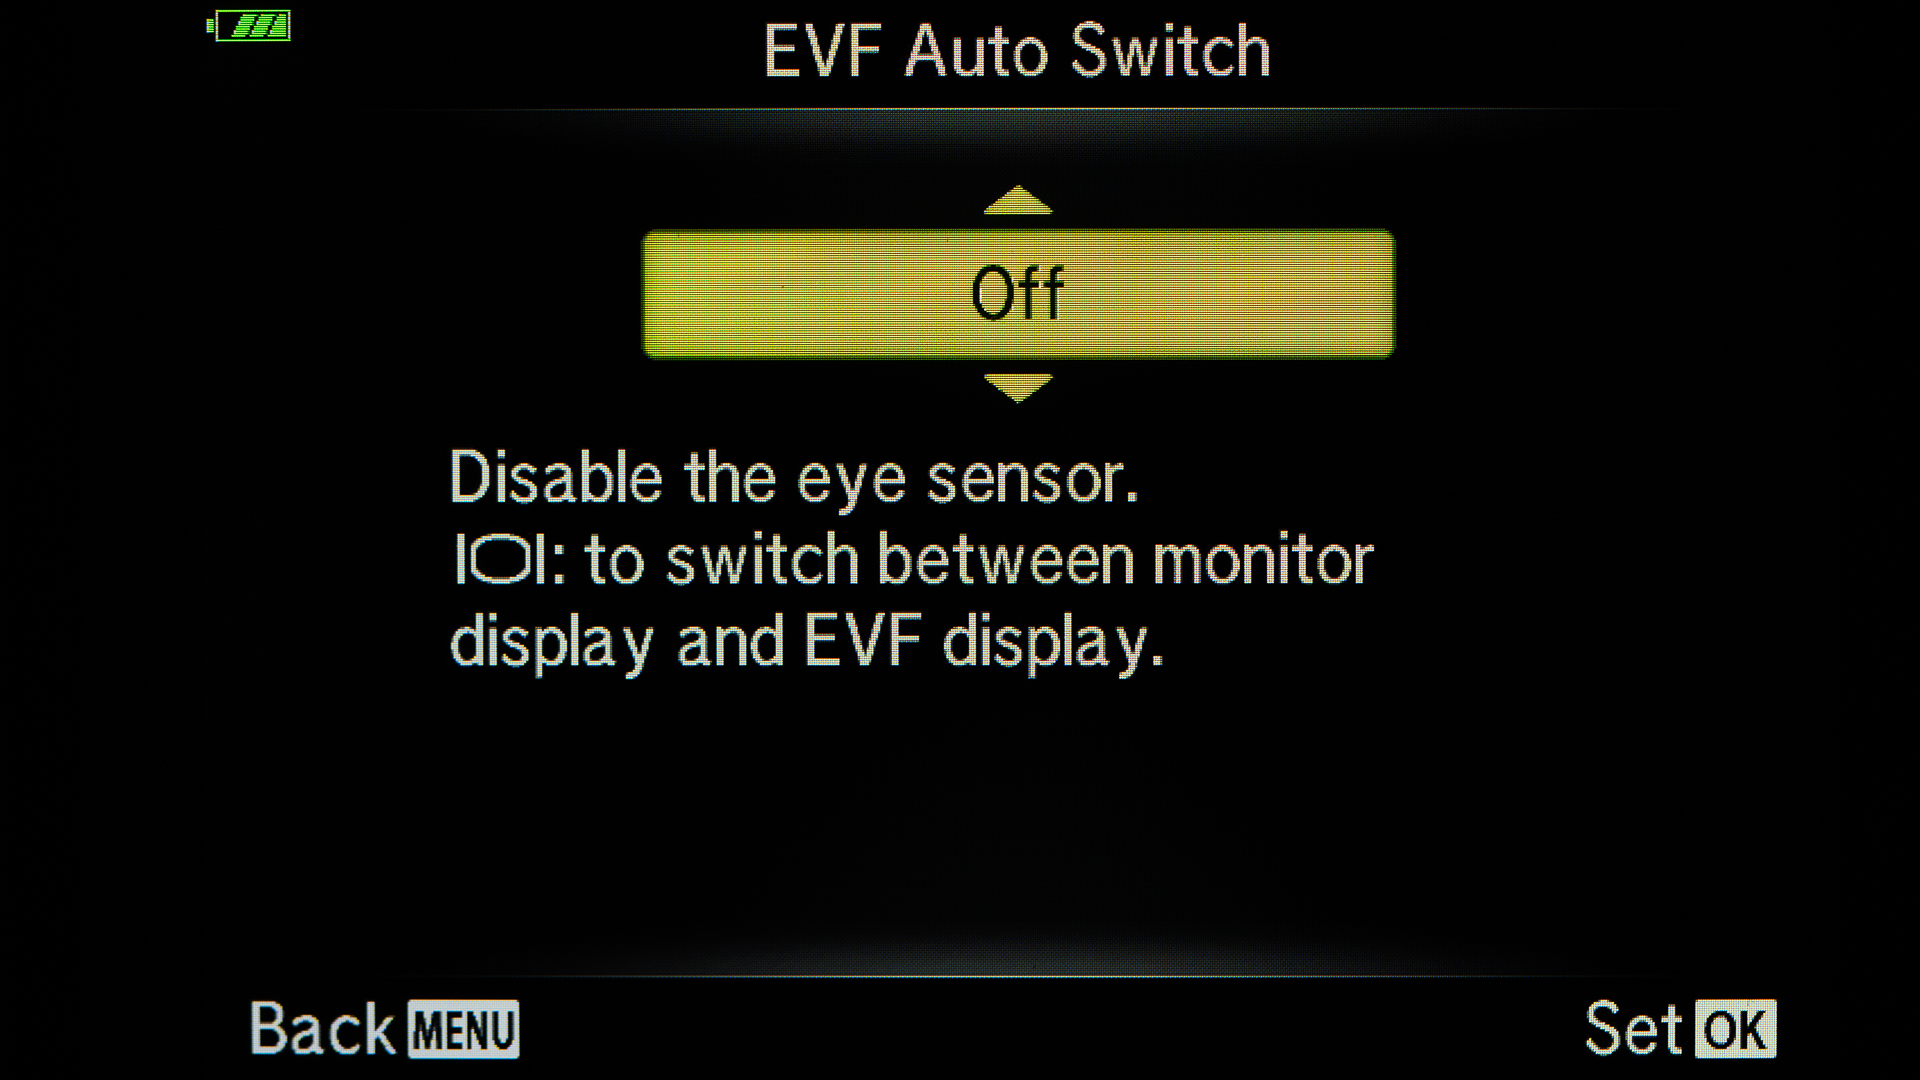 I like to toggle between EVF and LCD using the button on the side of the EVF. The automatic switch is a bit annoying.